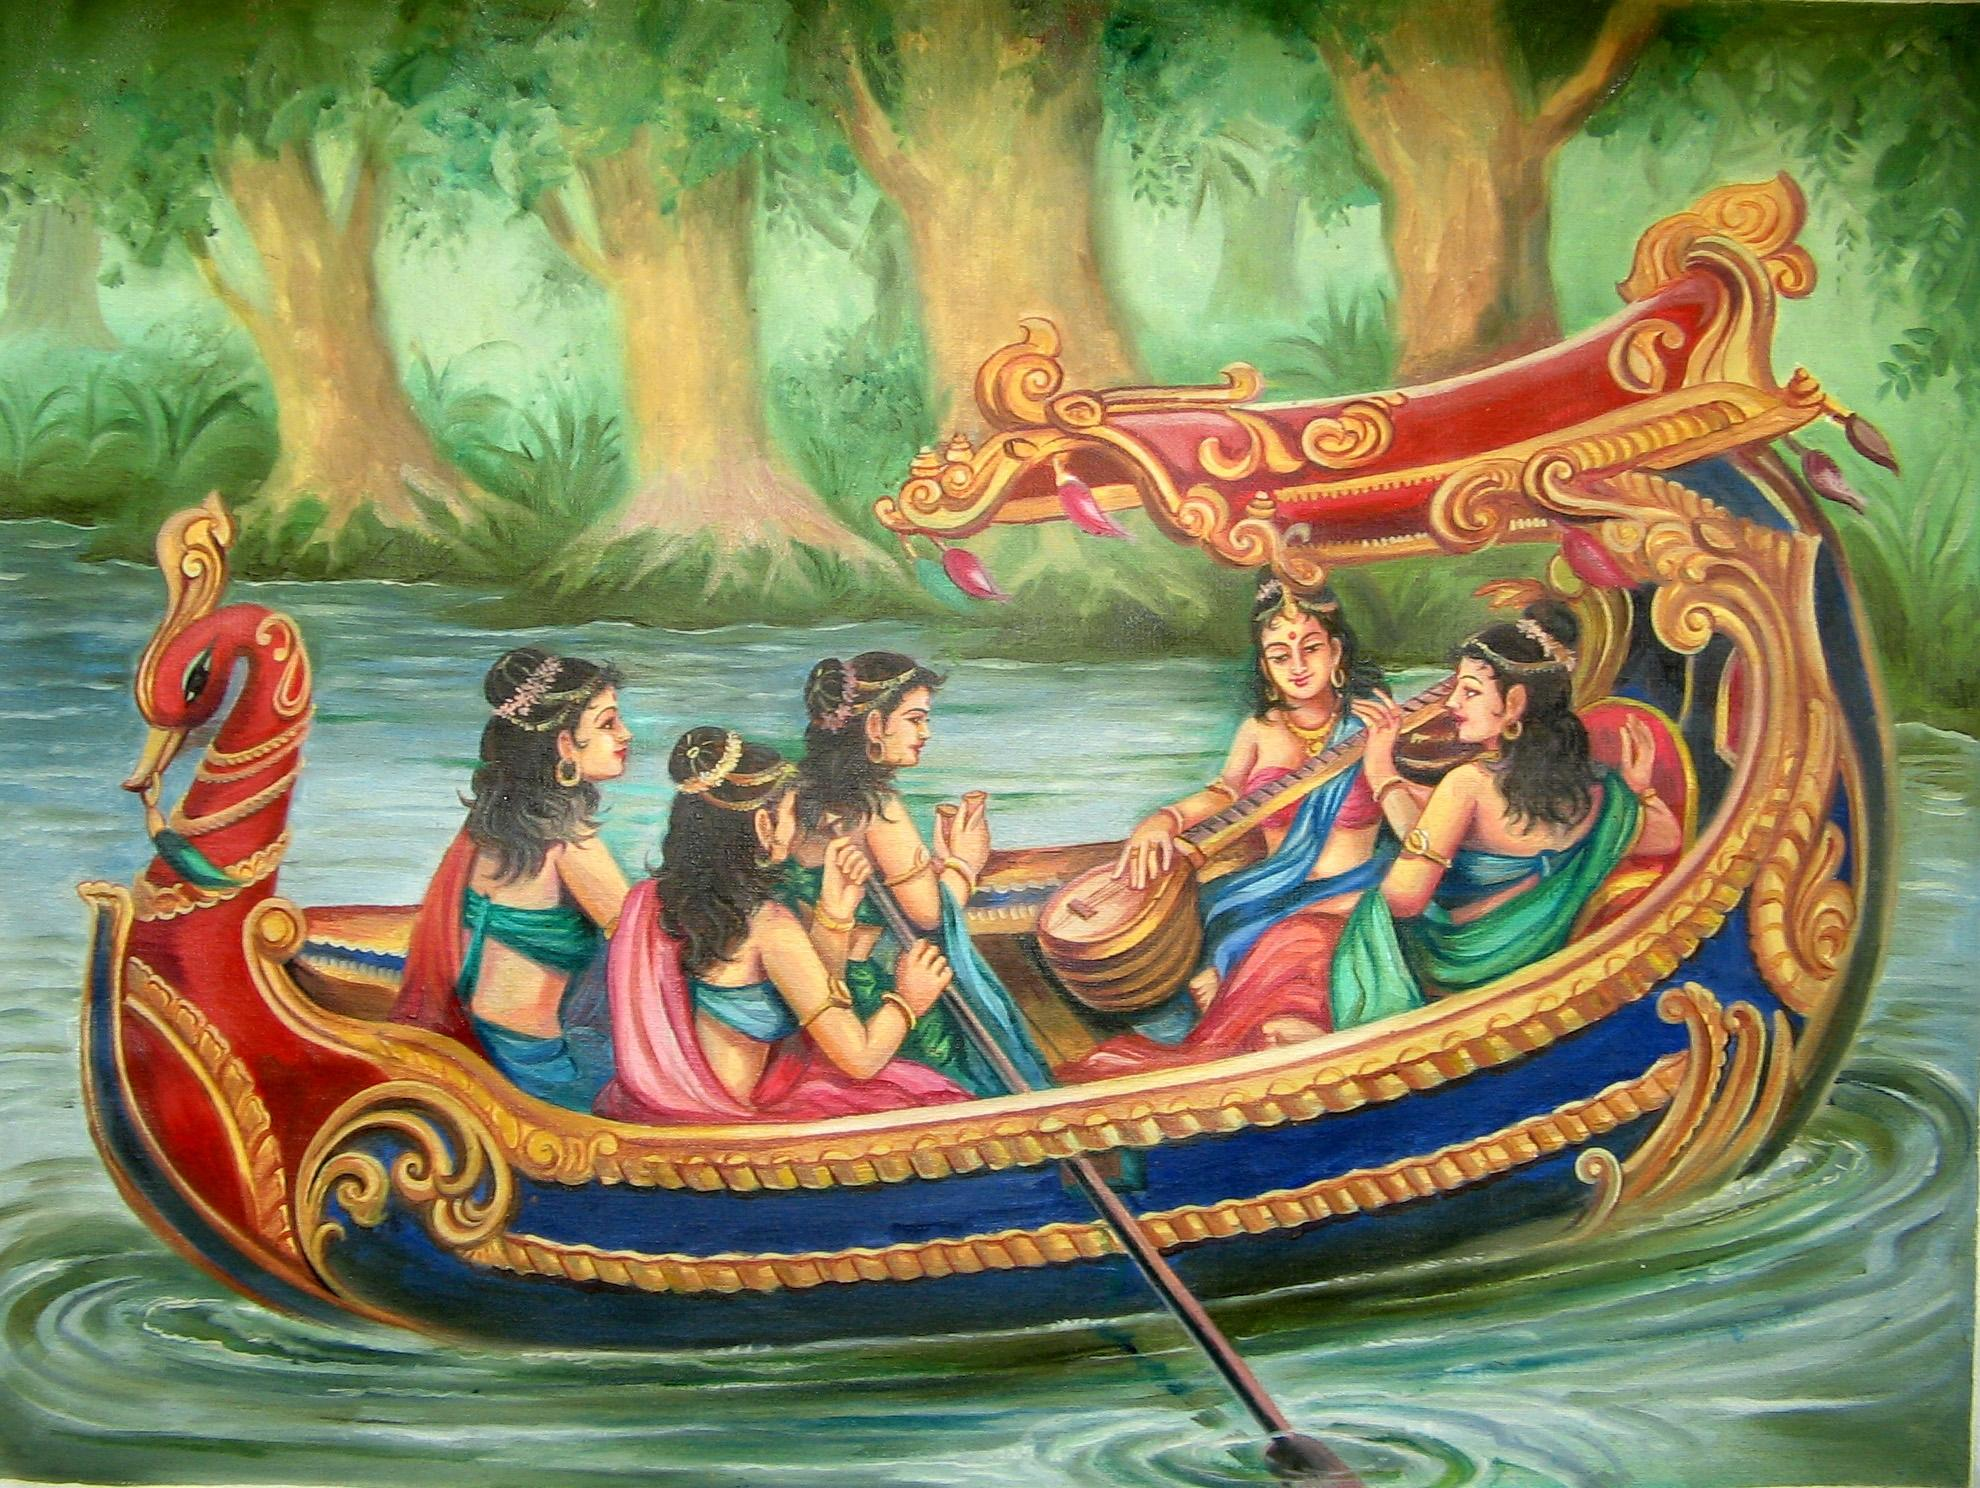 Lady Musicians in the boat 253